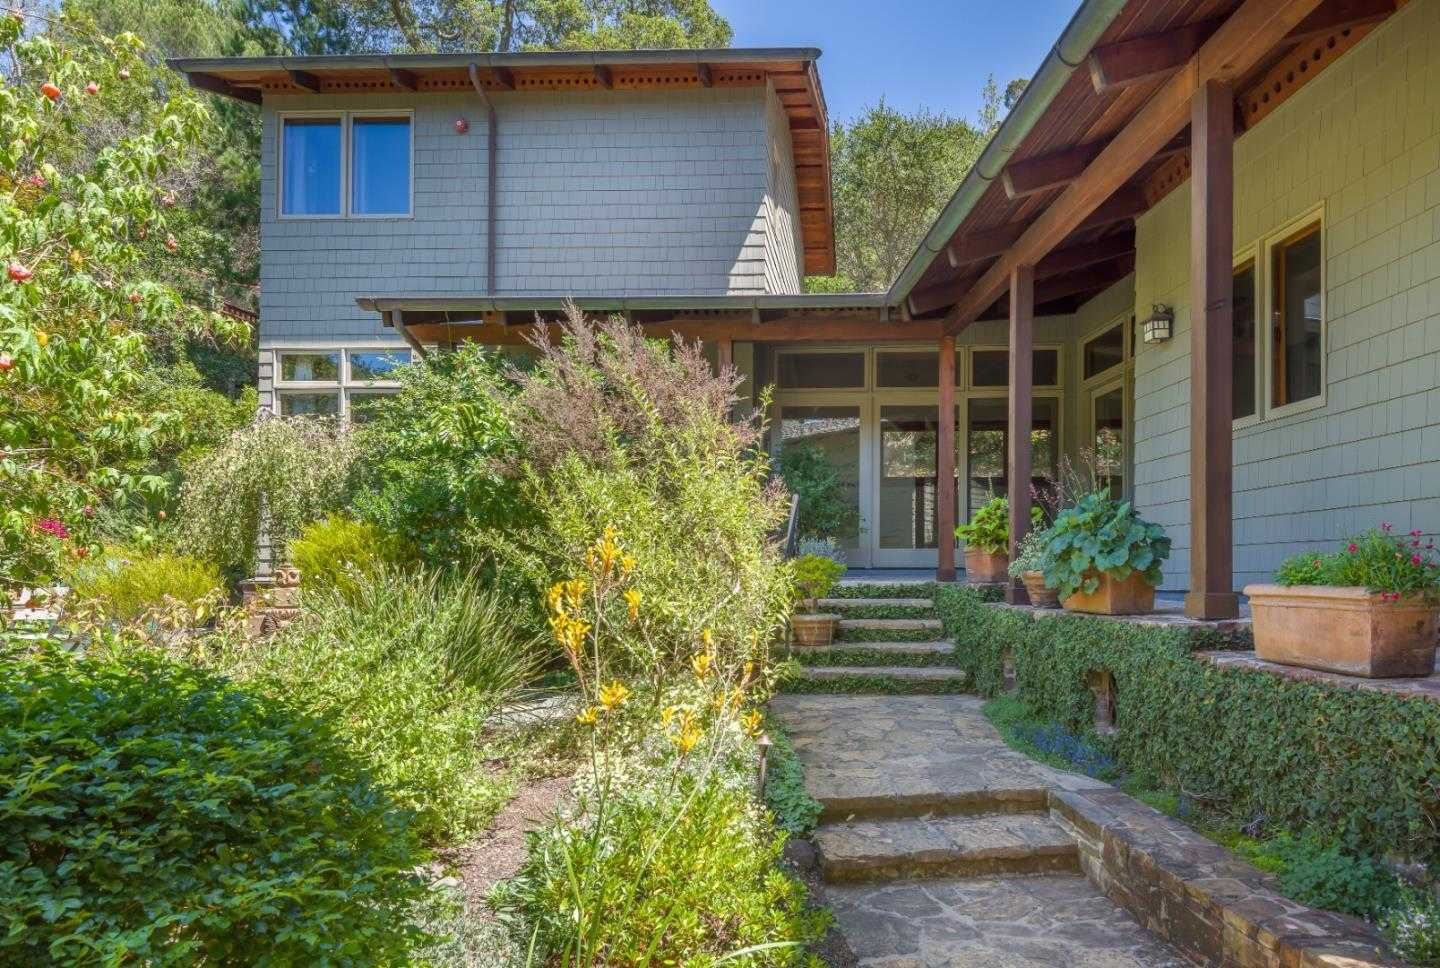 $2,698,000 - 3Br/3Ba -  for Sale in Burlingame